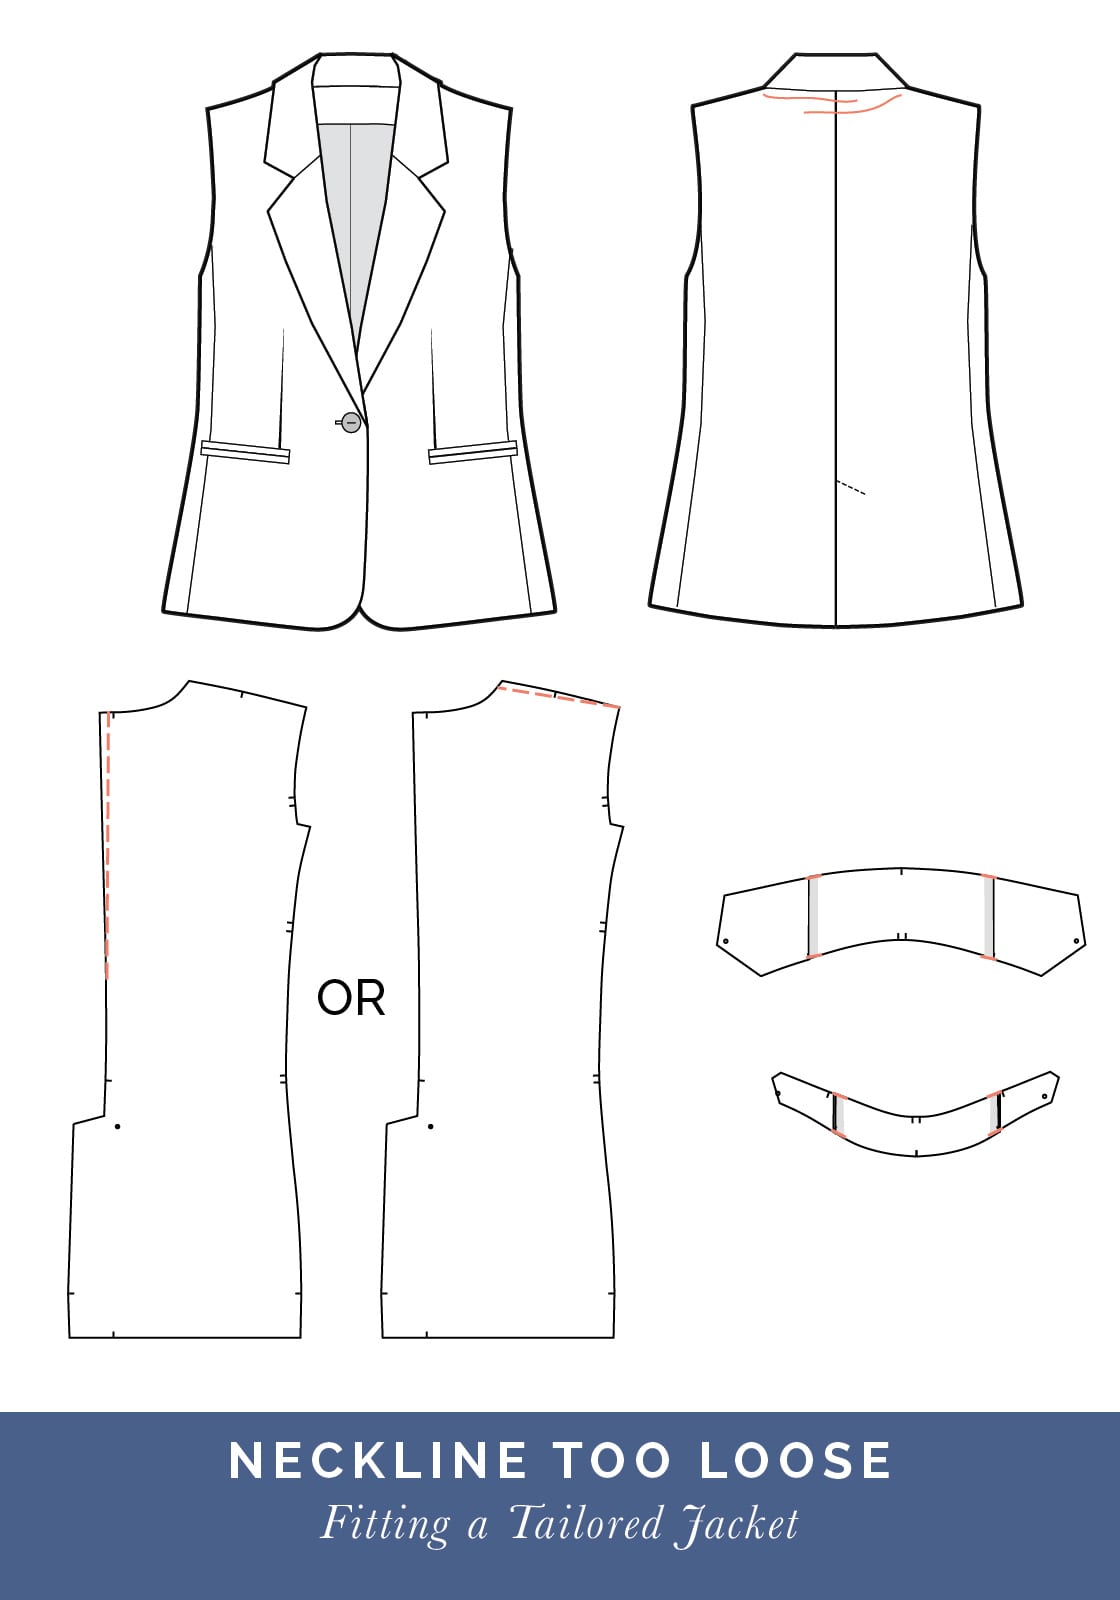 Neckline too loose // How to fit a Tailored jacket or Blazer // Fit adjustment issues and fixes